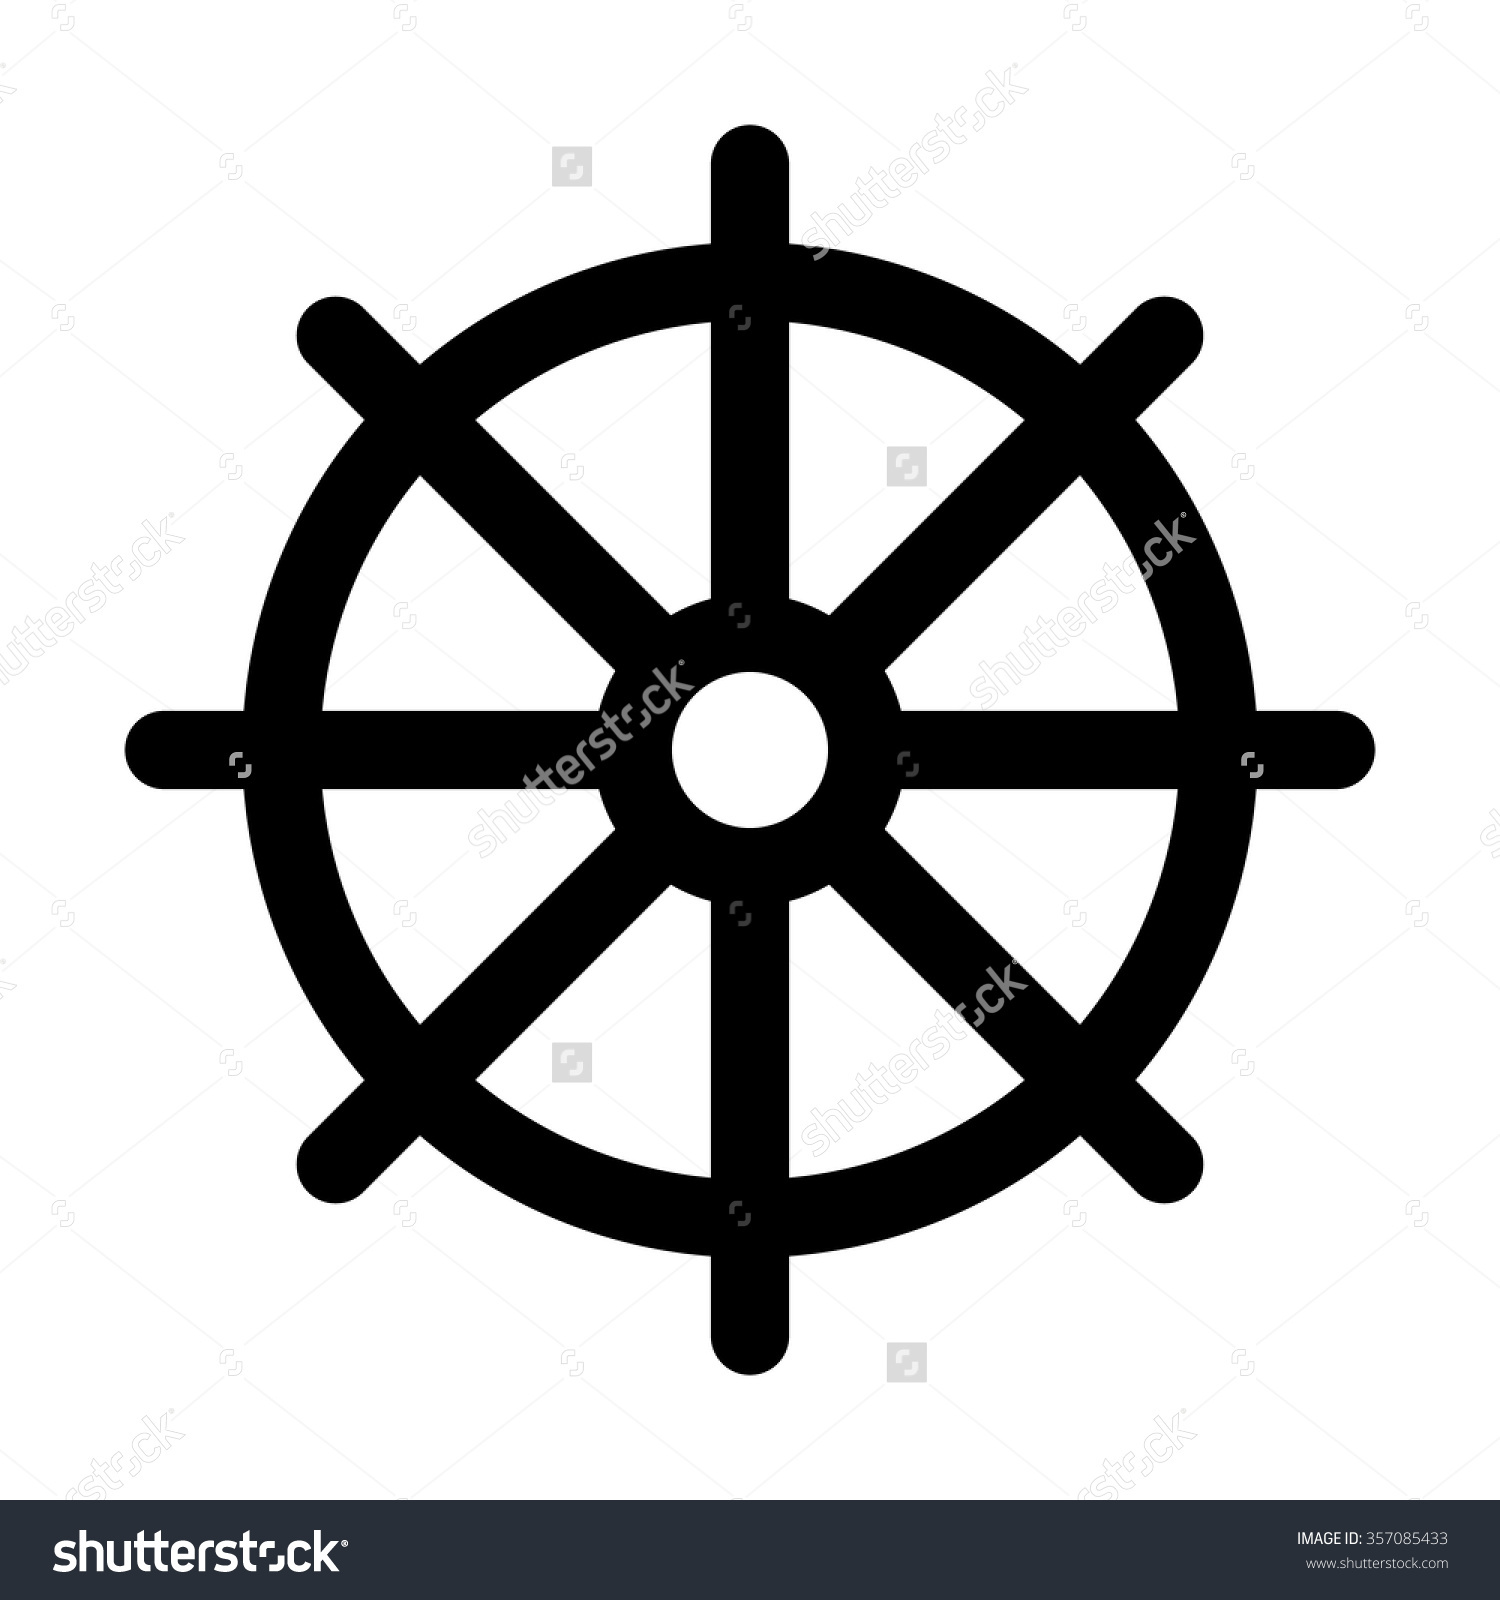 buddhist wheel of life template - wheel of dharma hd png transparent wheel of dharma hd png